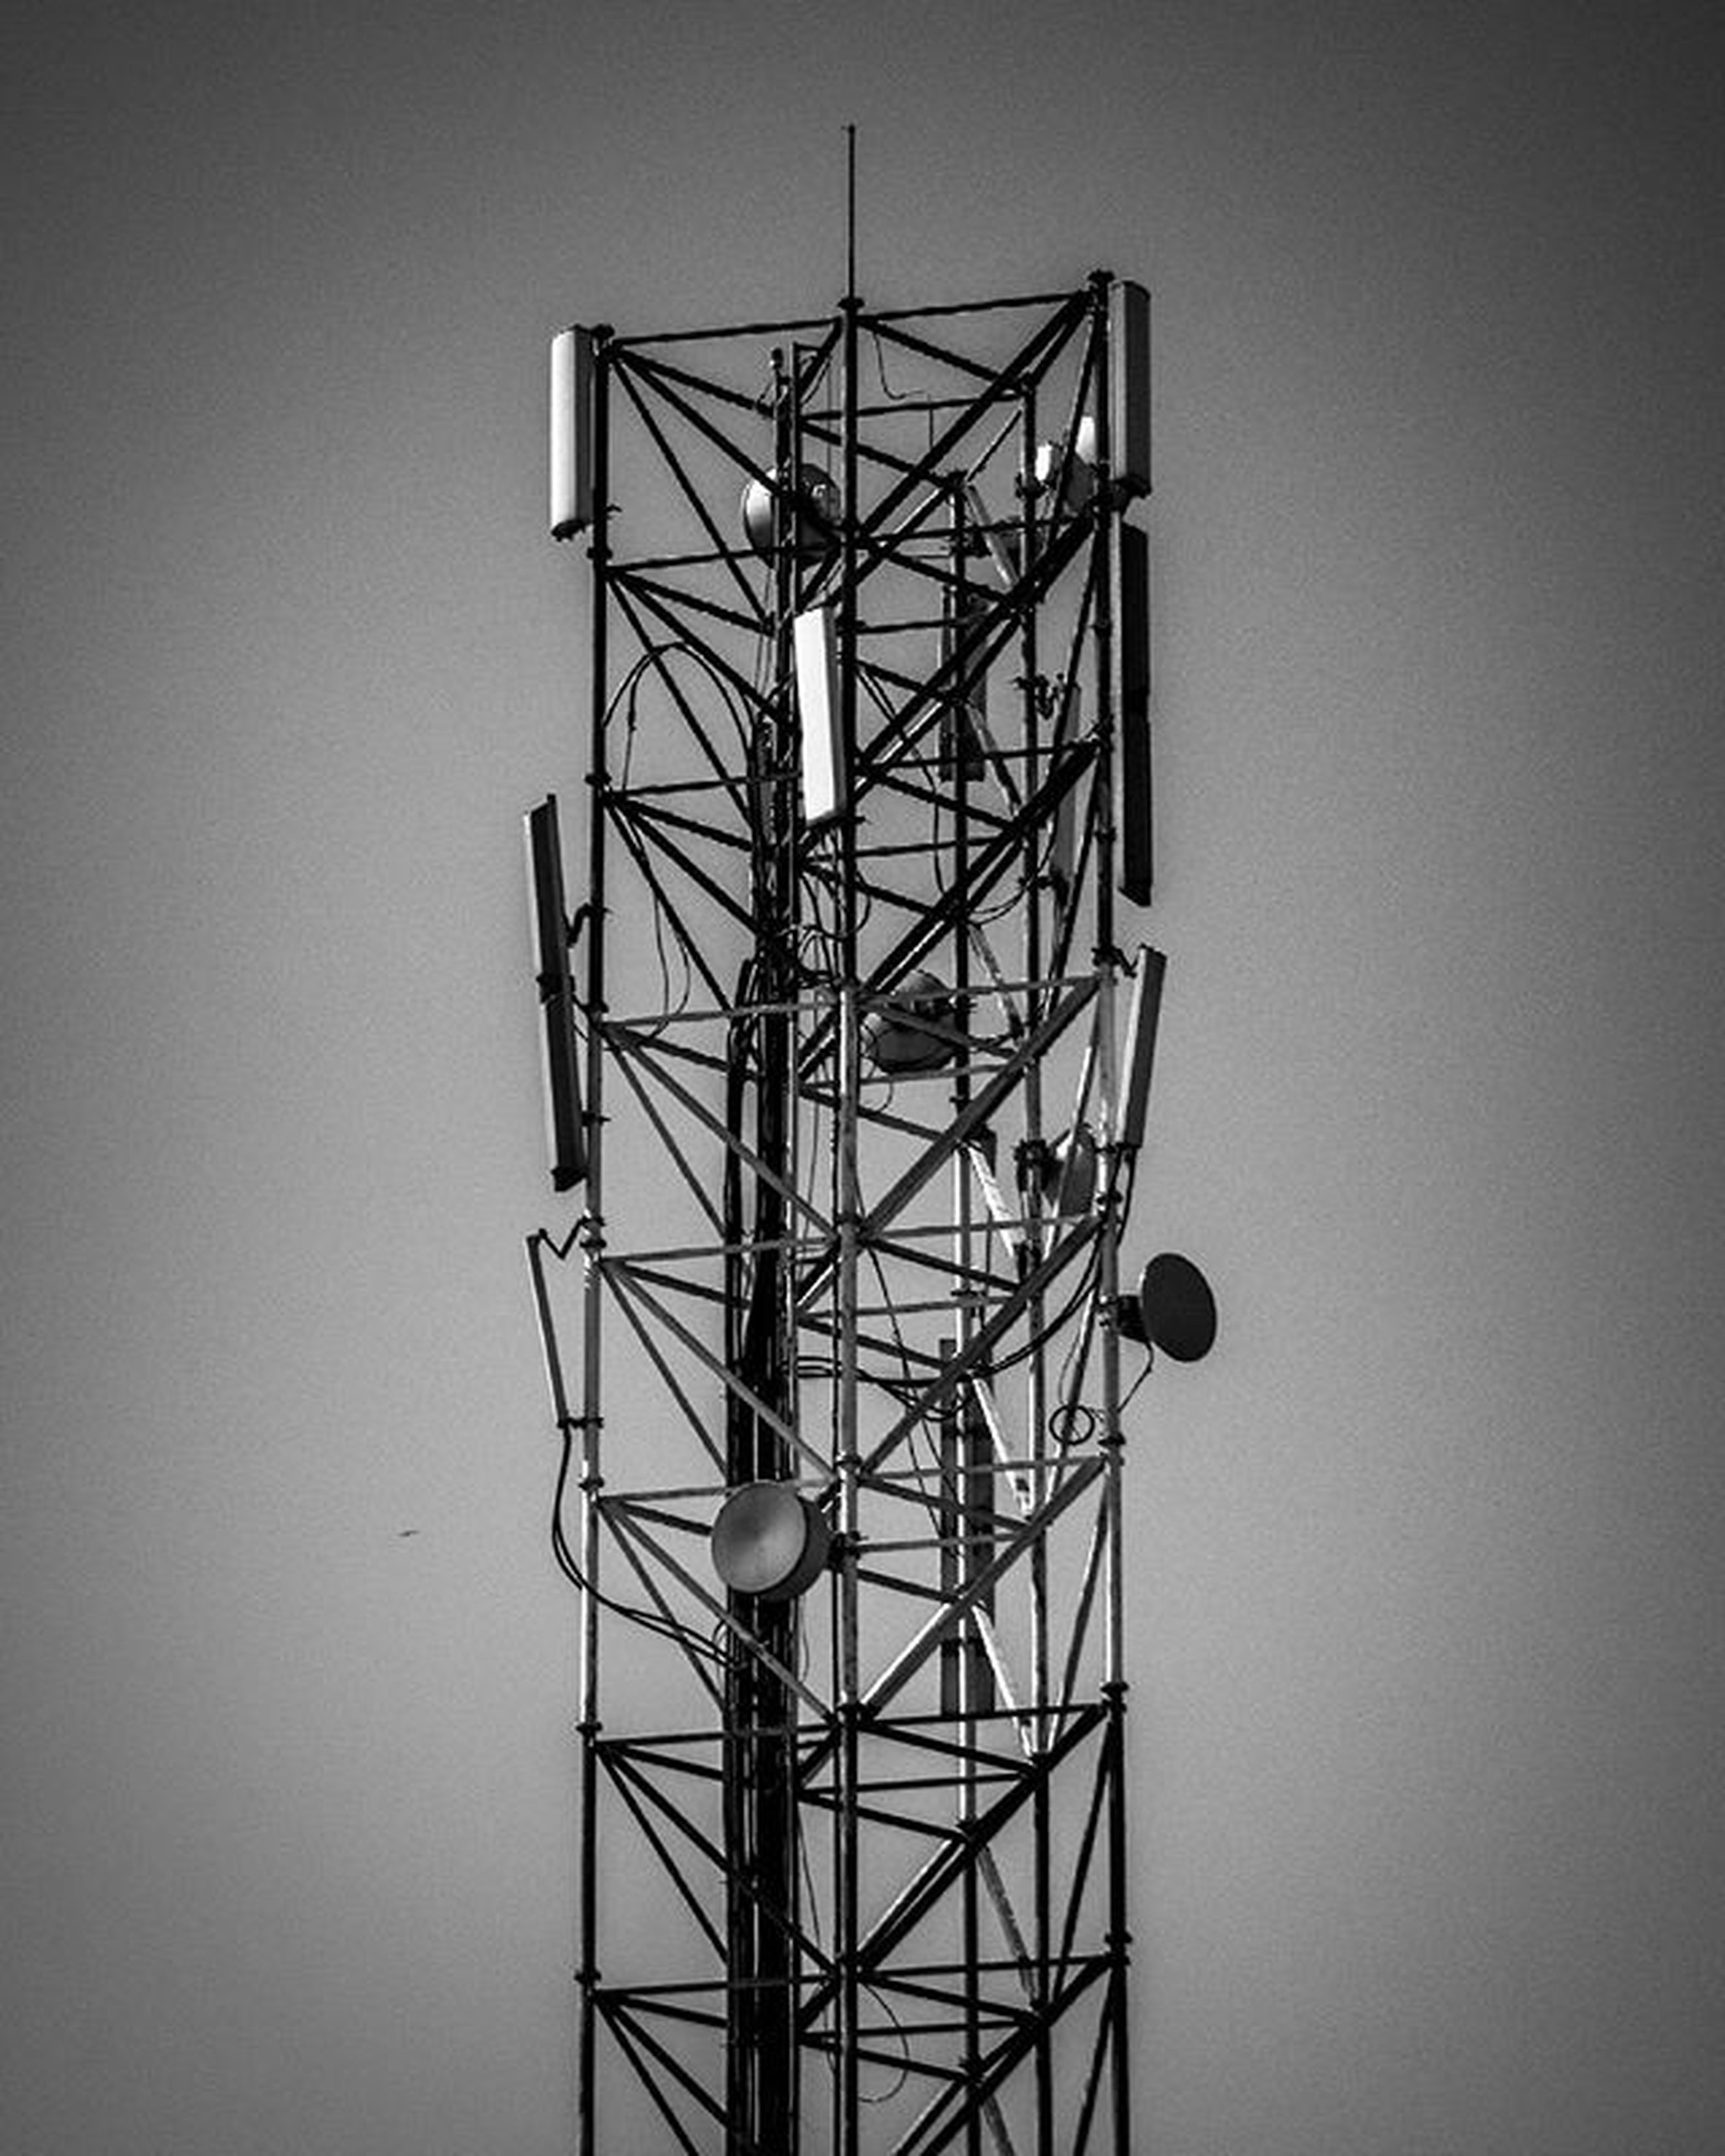 low angle view, clear sky, electricity, fuel and power generation, technology, built structure, copy space, sky, electricity pylon, silhouette, connection, metal, architecture, tall - high, lighting equipment, power supply, no people, outdoors, dusk, tower